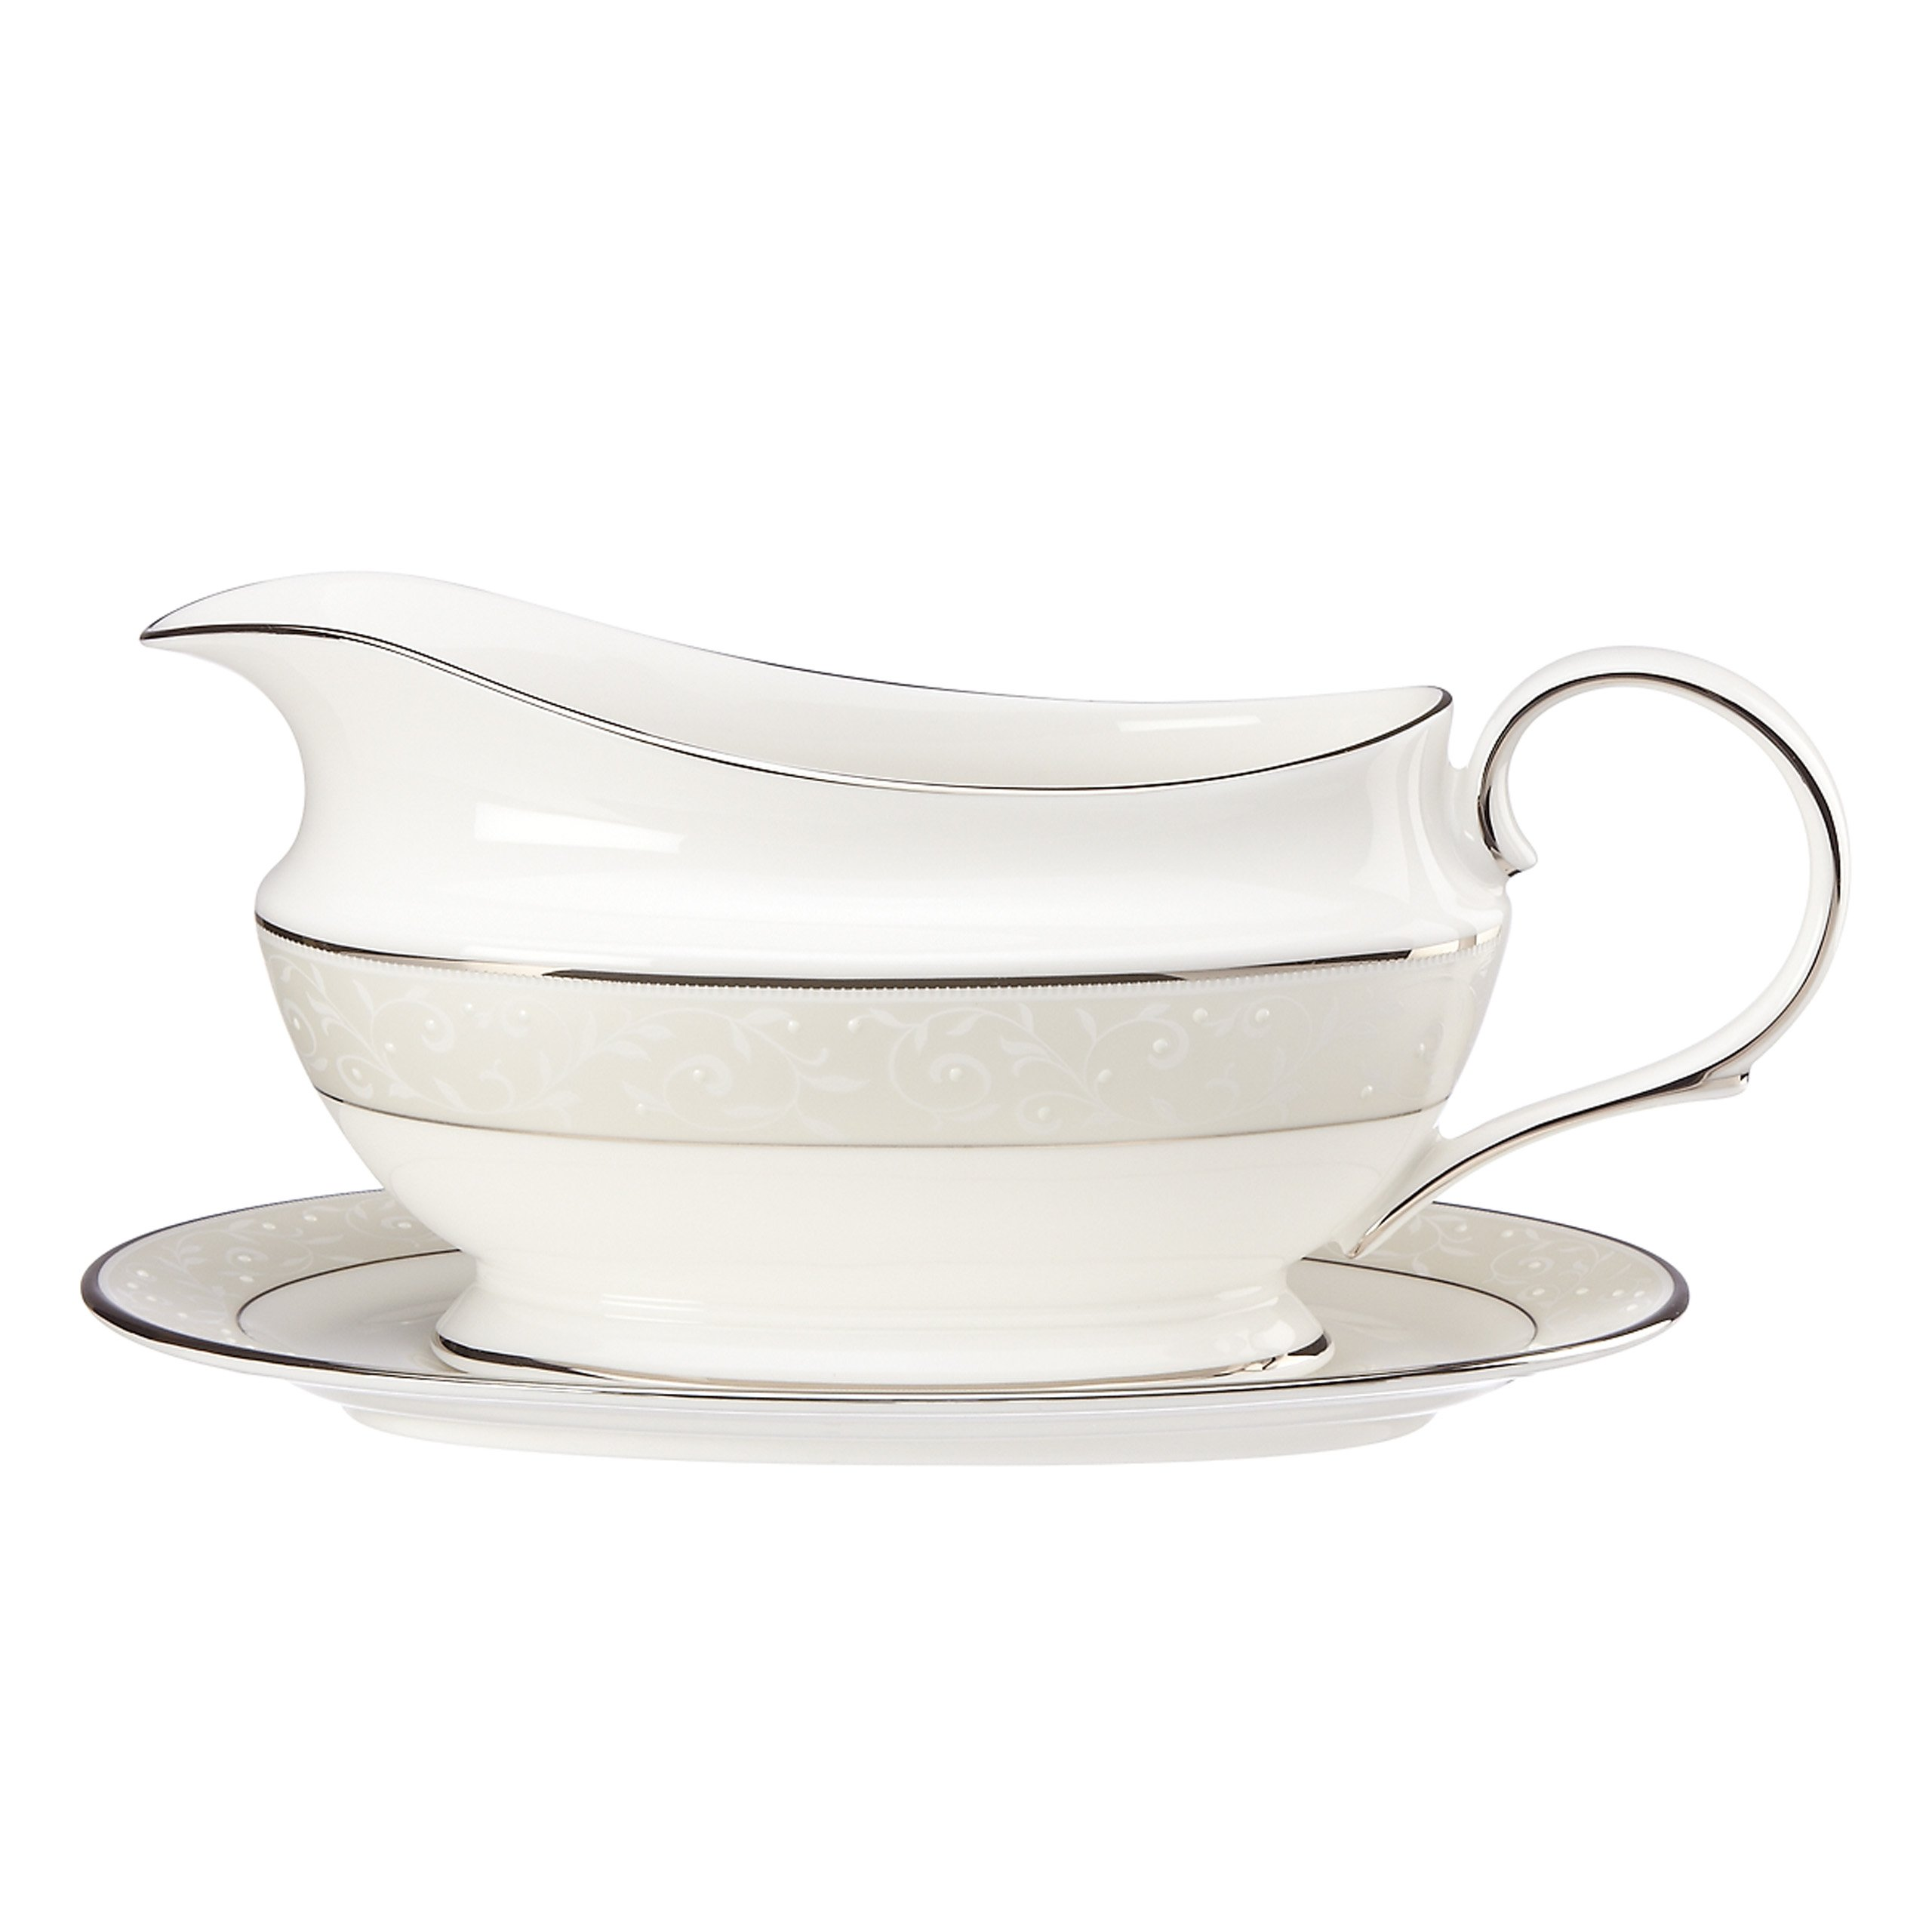 Lenox Opal Innocence Sauce Boat and Stand, White by Lenox